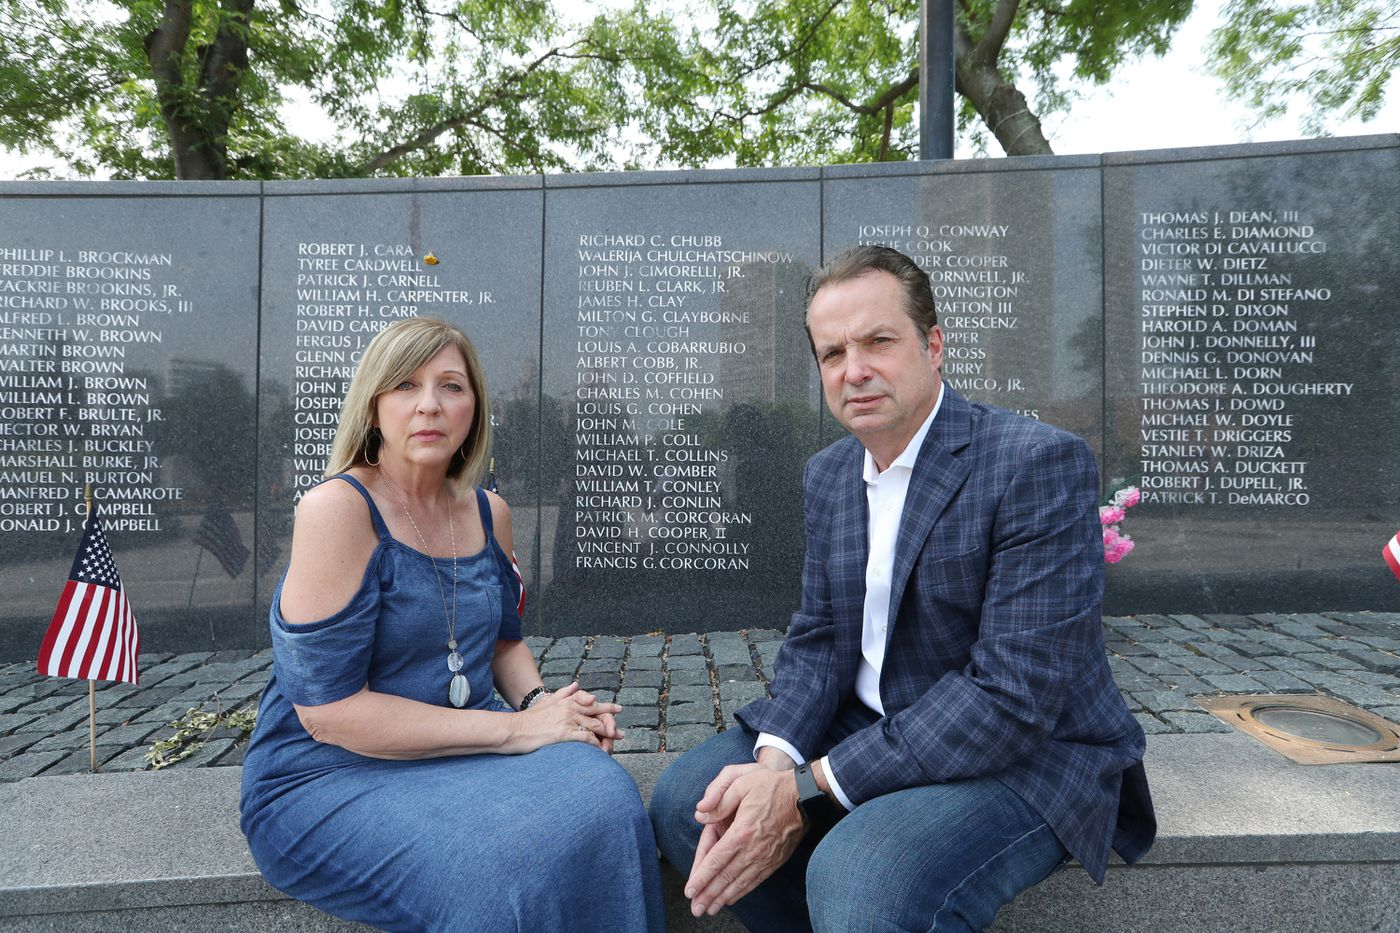 74 sailors died during a Vietnam warfare exercise, but their names aren't on D.C. memorial